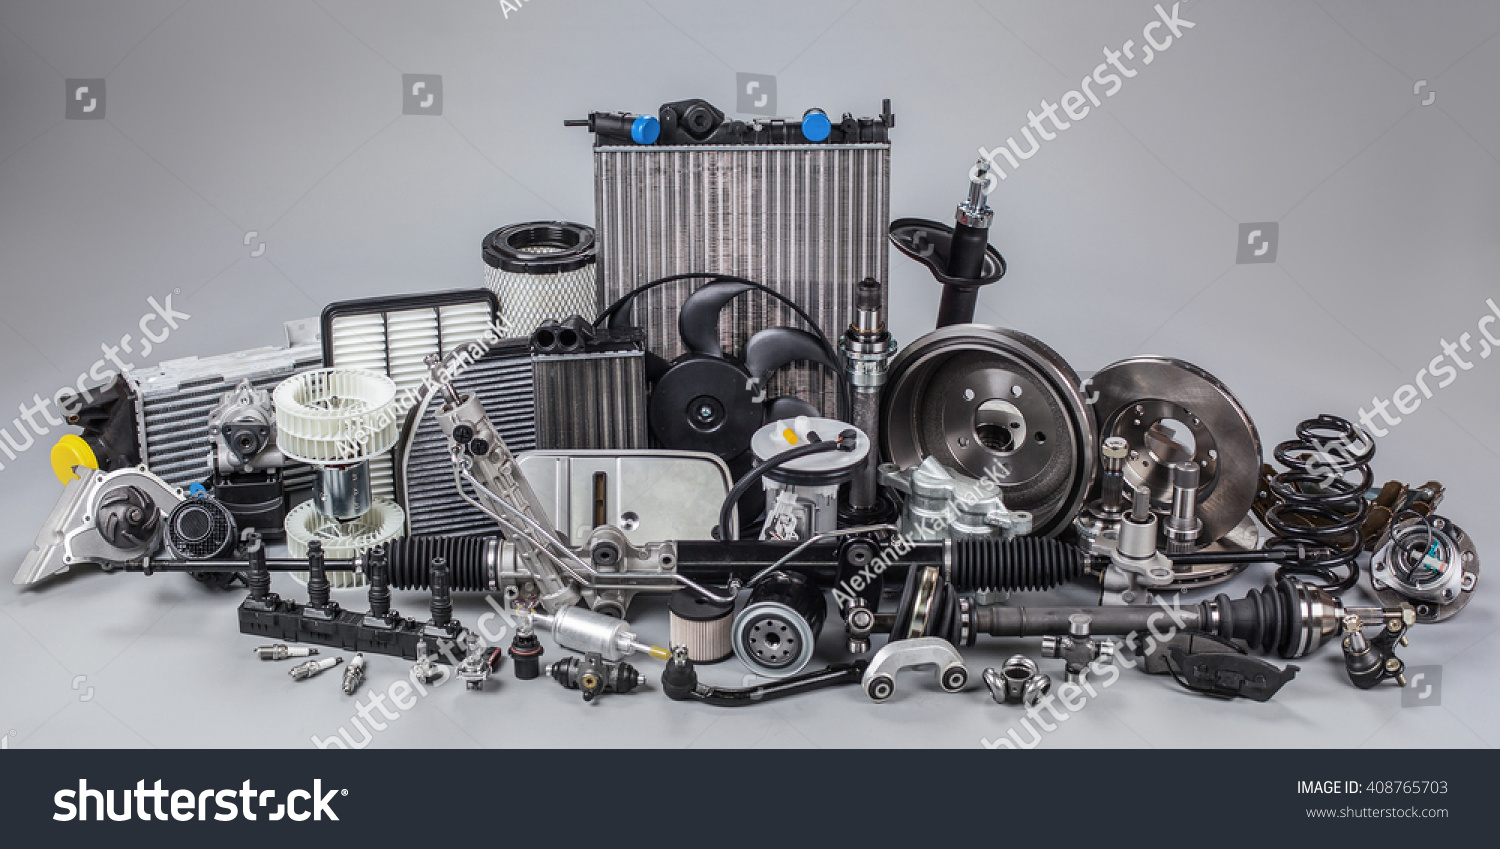 Car Parts On Gray Background Stock Photo (Safe to Use) 408765703 ...